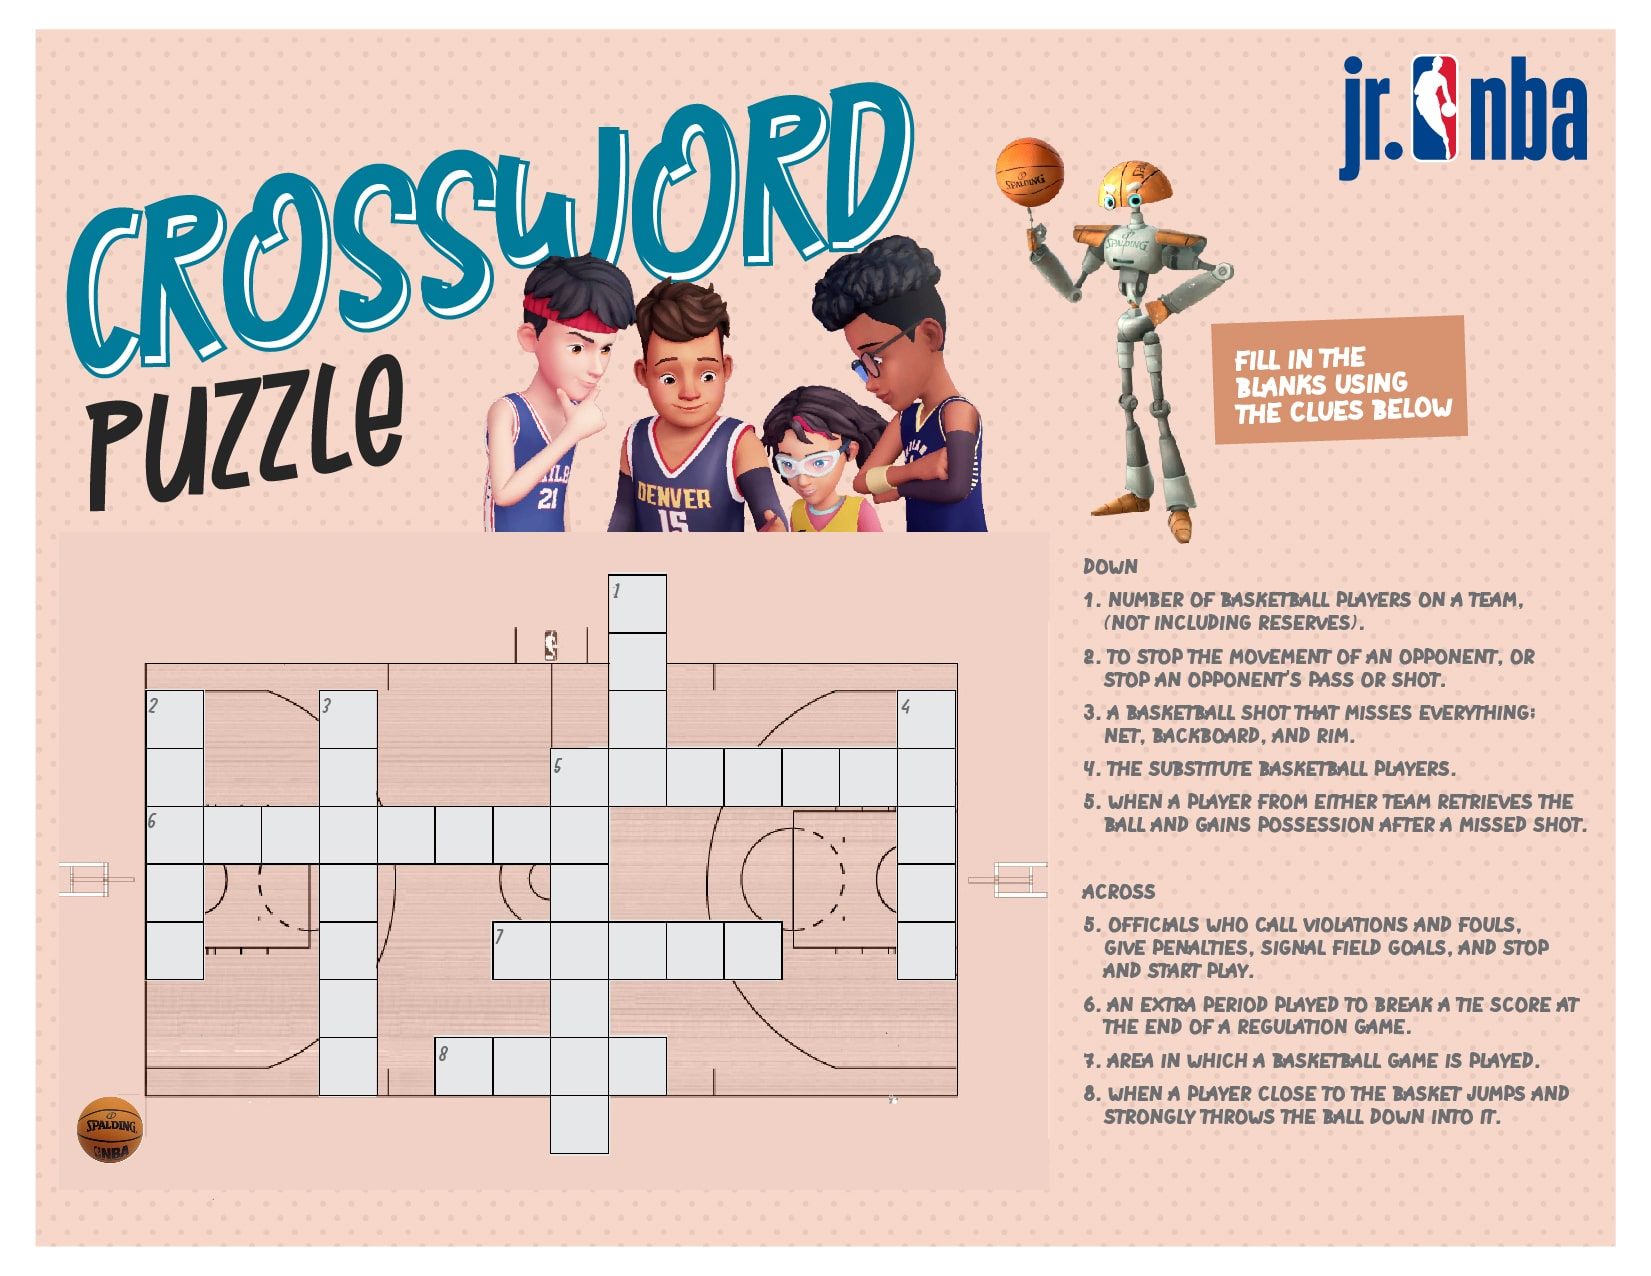 This image is for the Activity - Crossword Puzzle